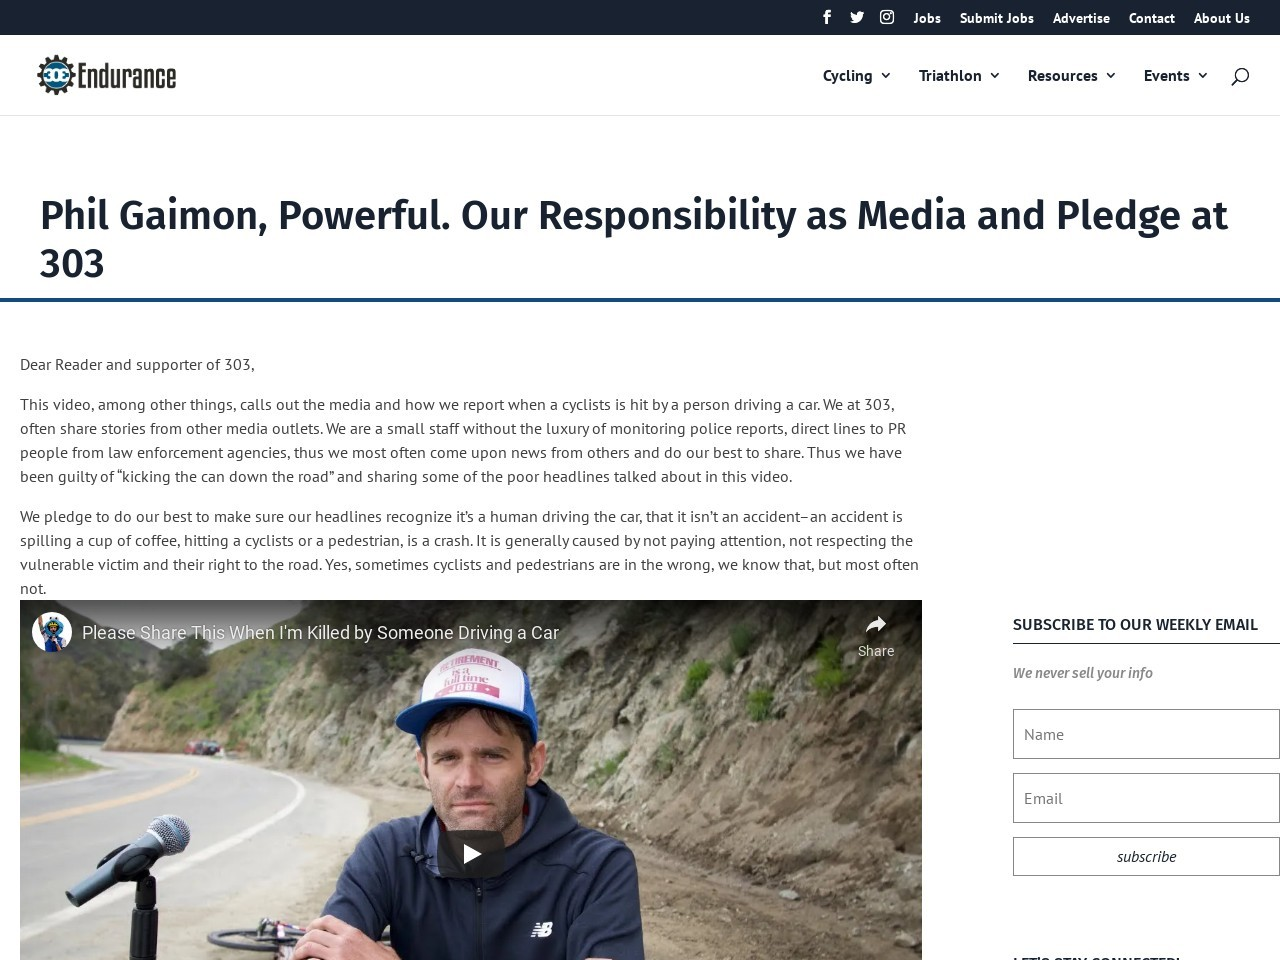 Phil Gaimon, Powerful. Our Responsibility as Media and Pledge at 303